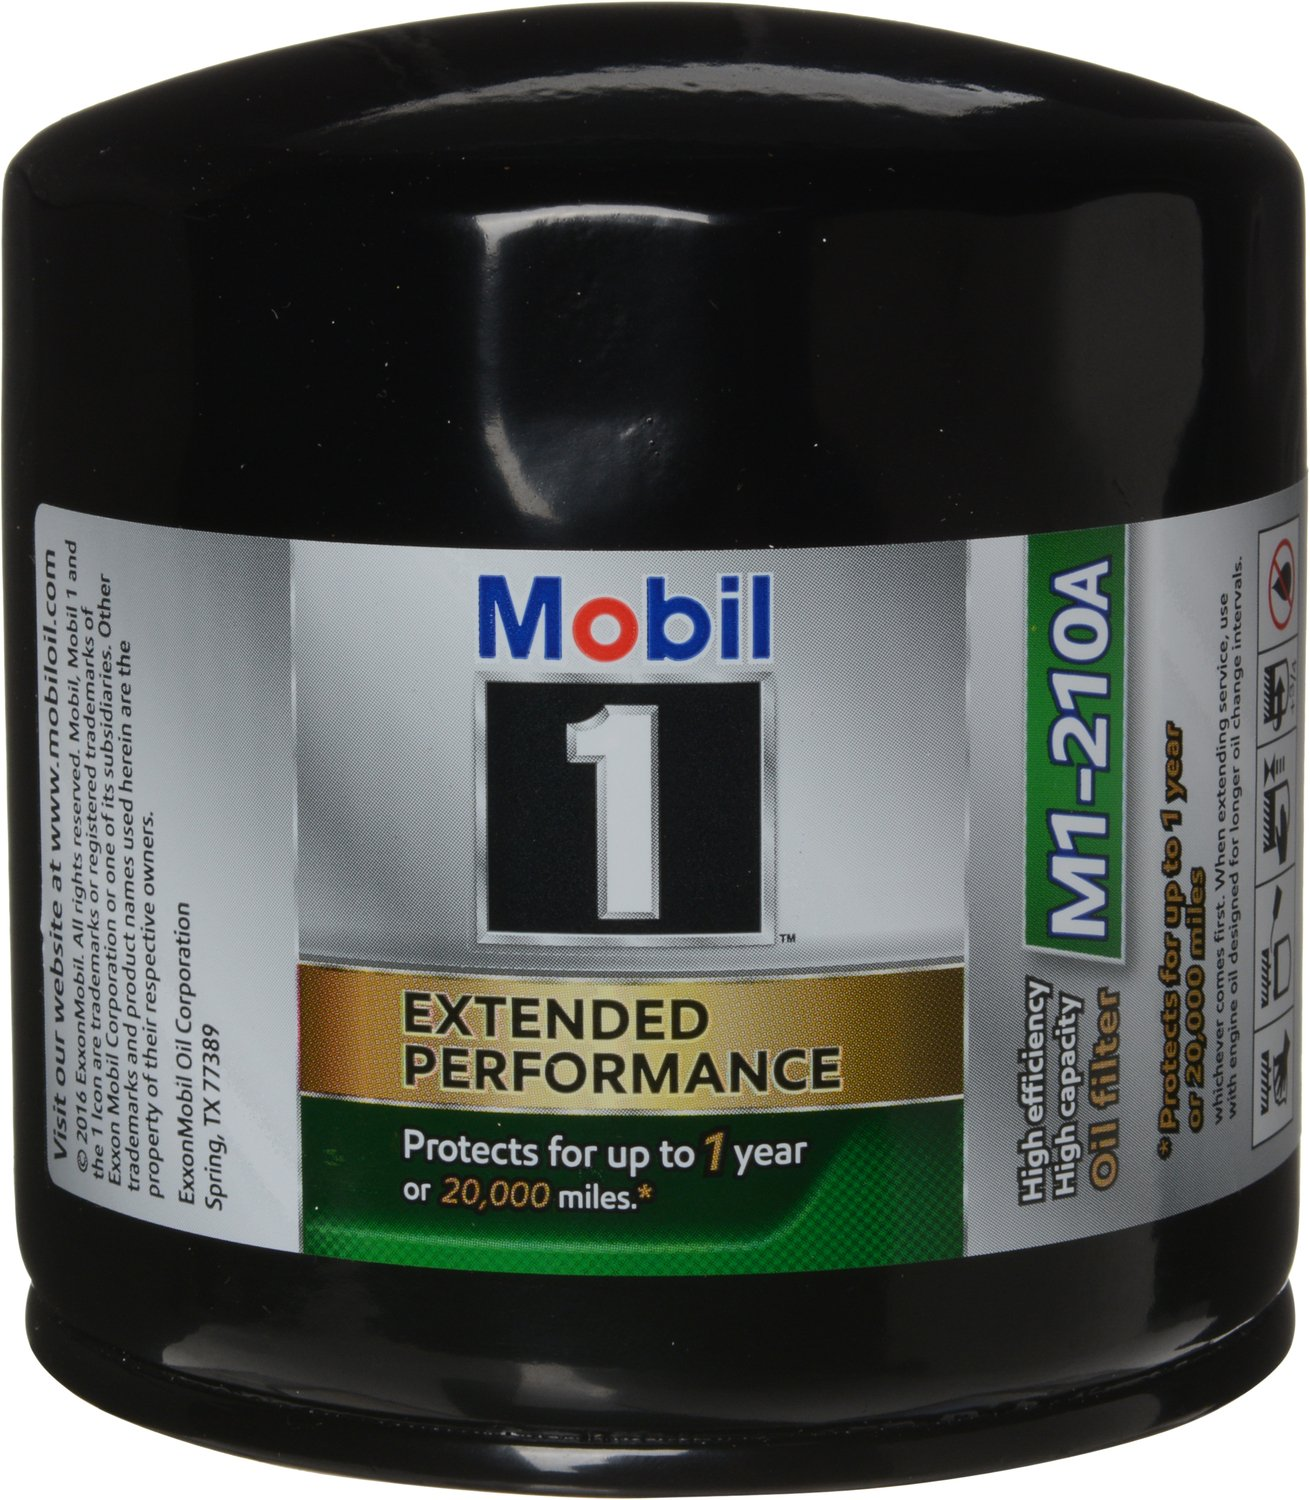 Mobil 1 M1-210A Extended Performance Oil Filter, Pack of 2